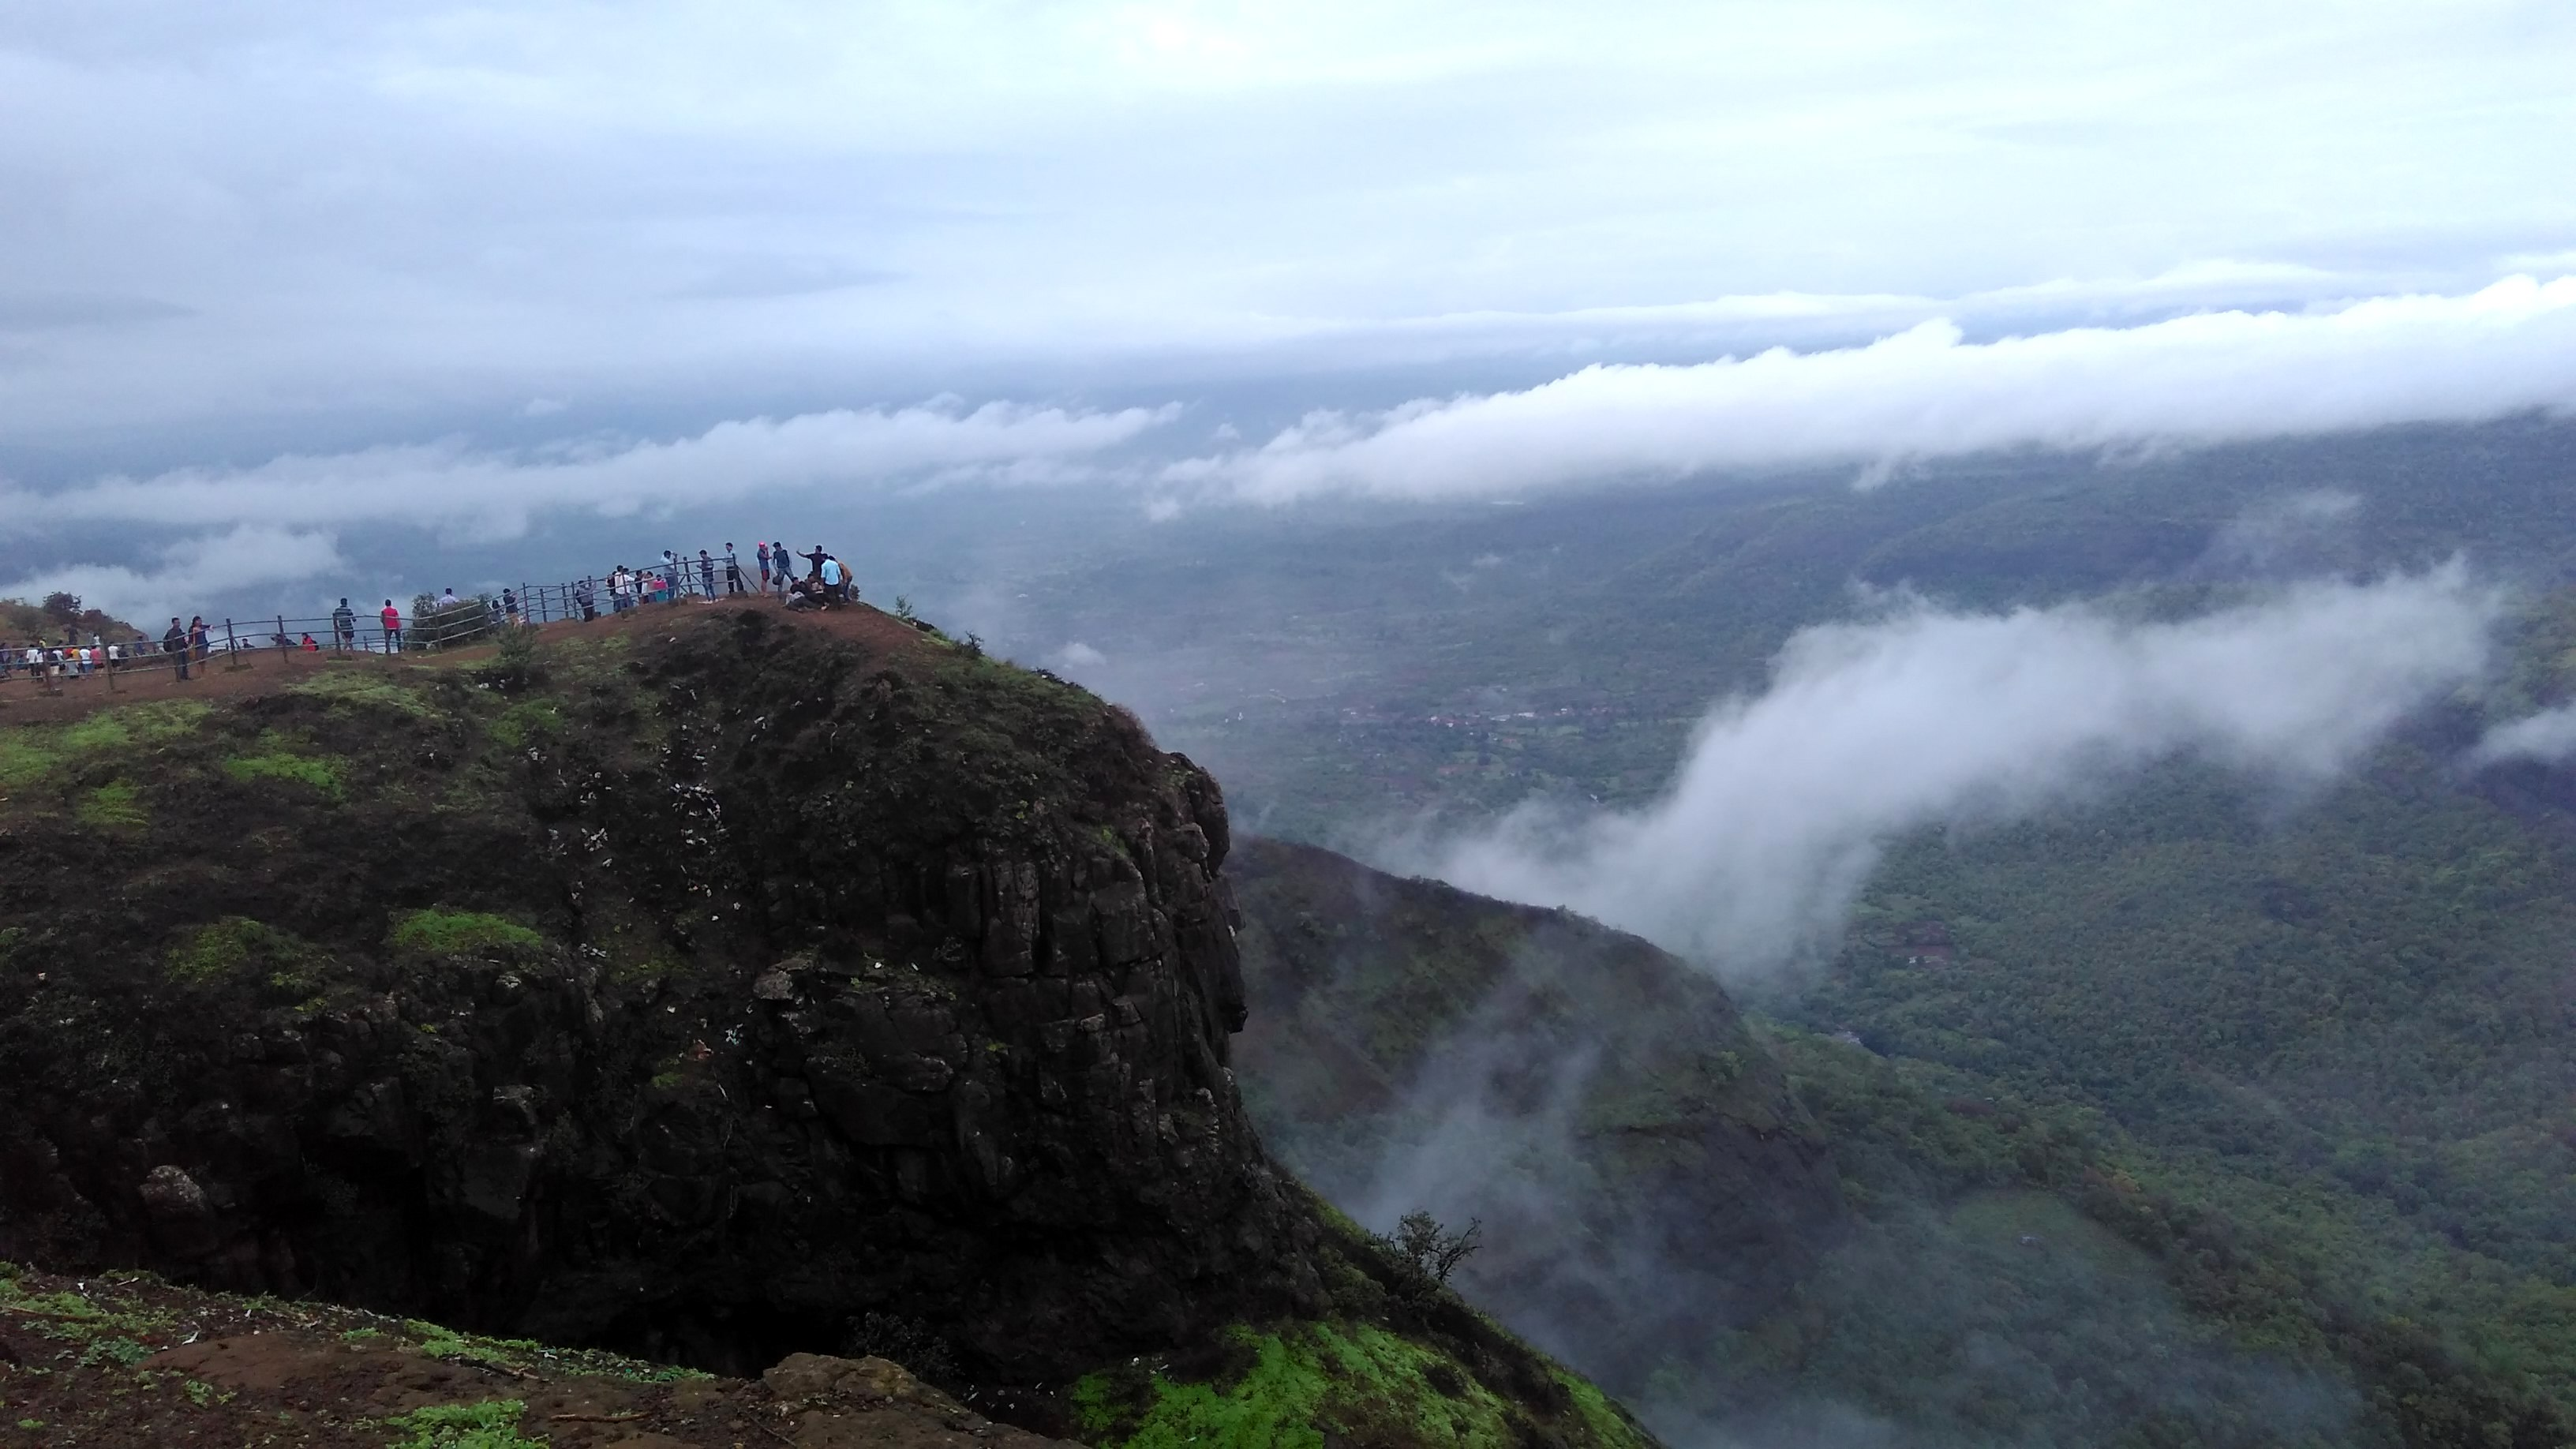 A hill station called Lonavla